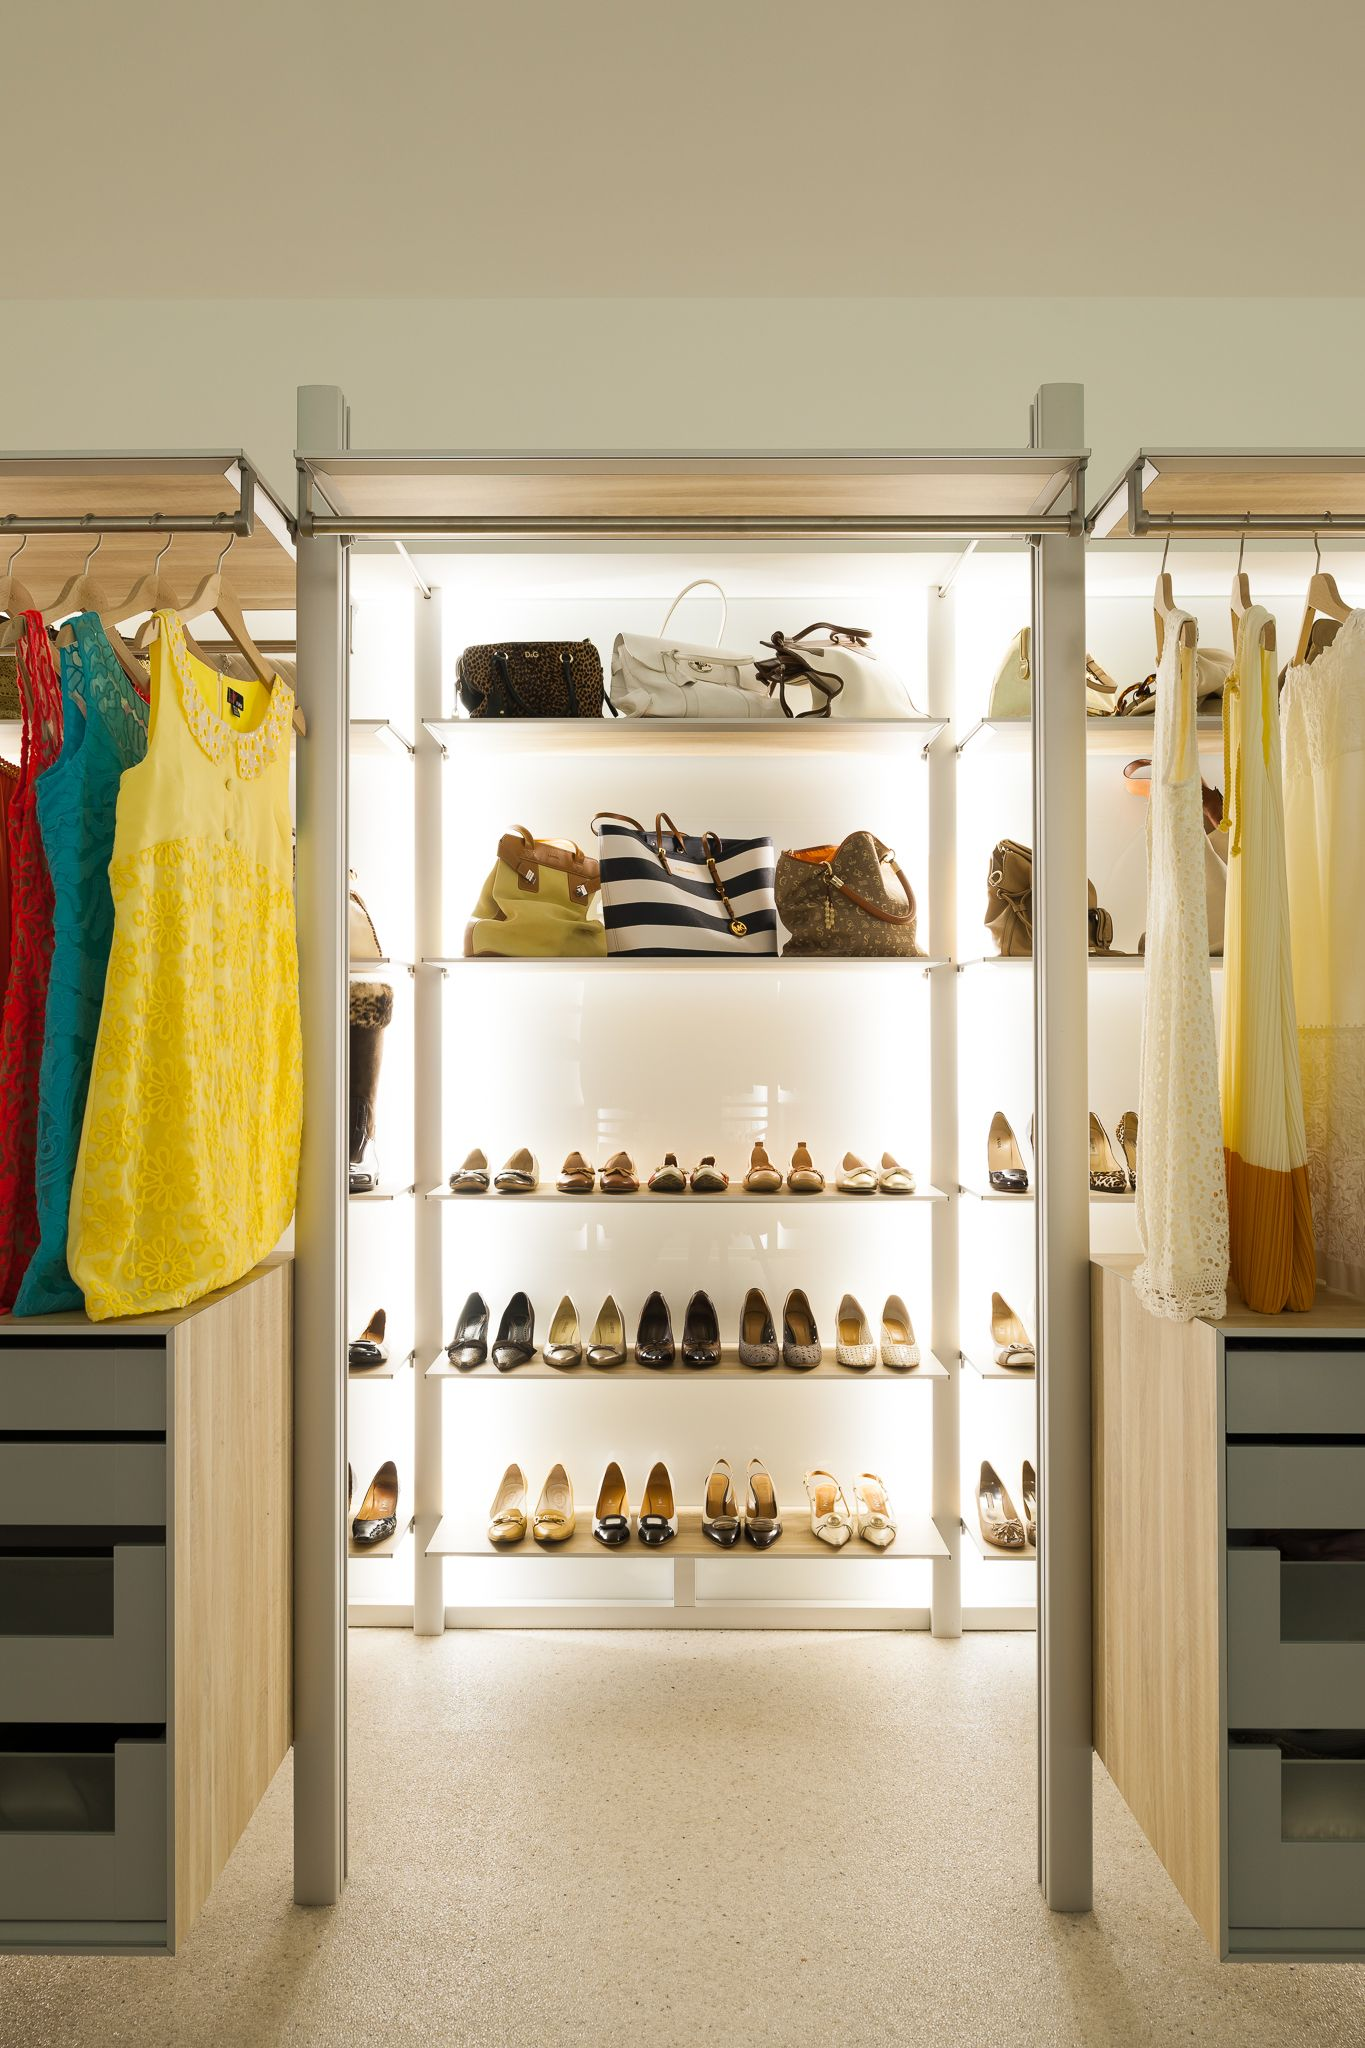 How to store shoes, pumps and handbags in a modern walk-in closet ...